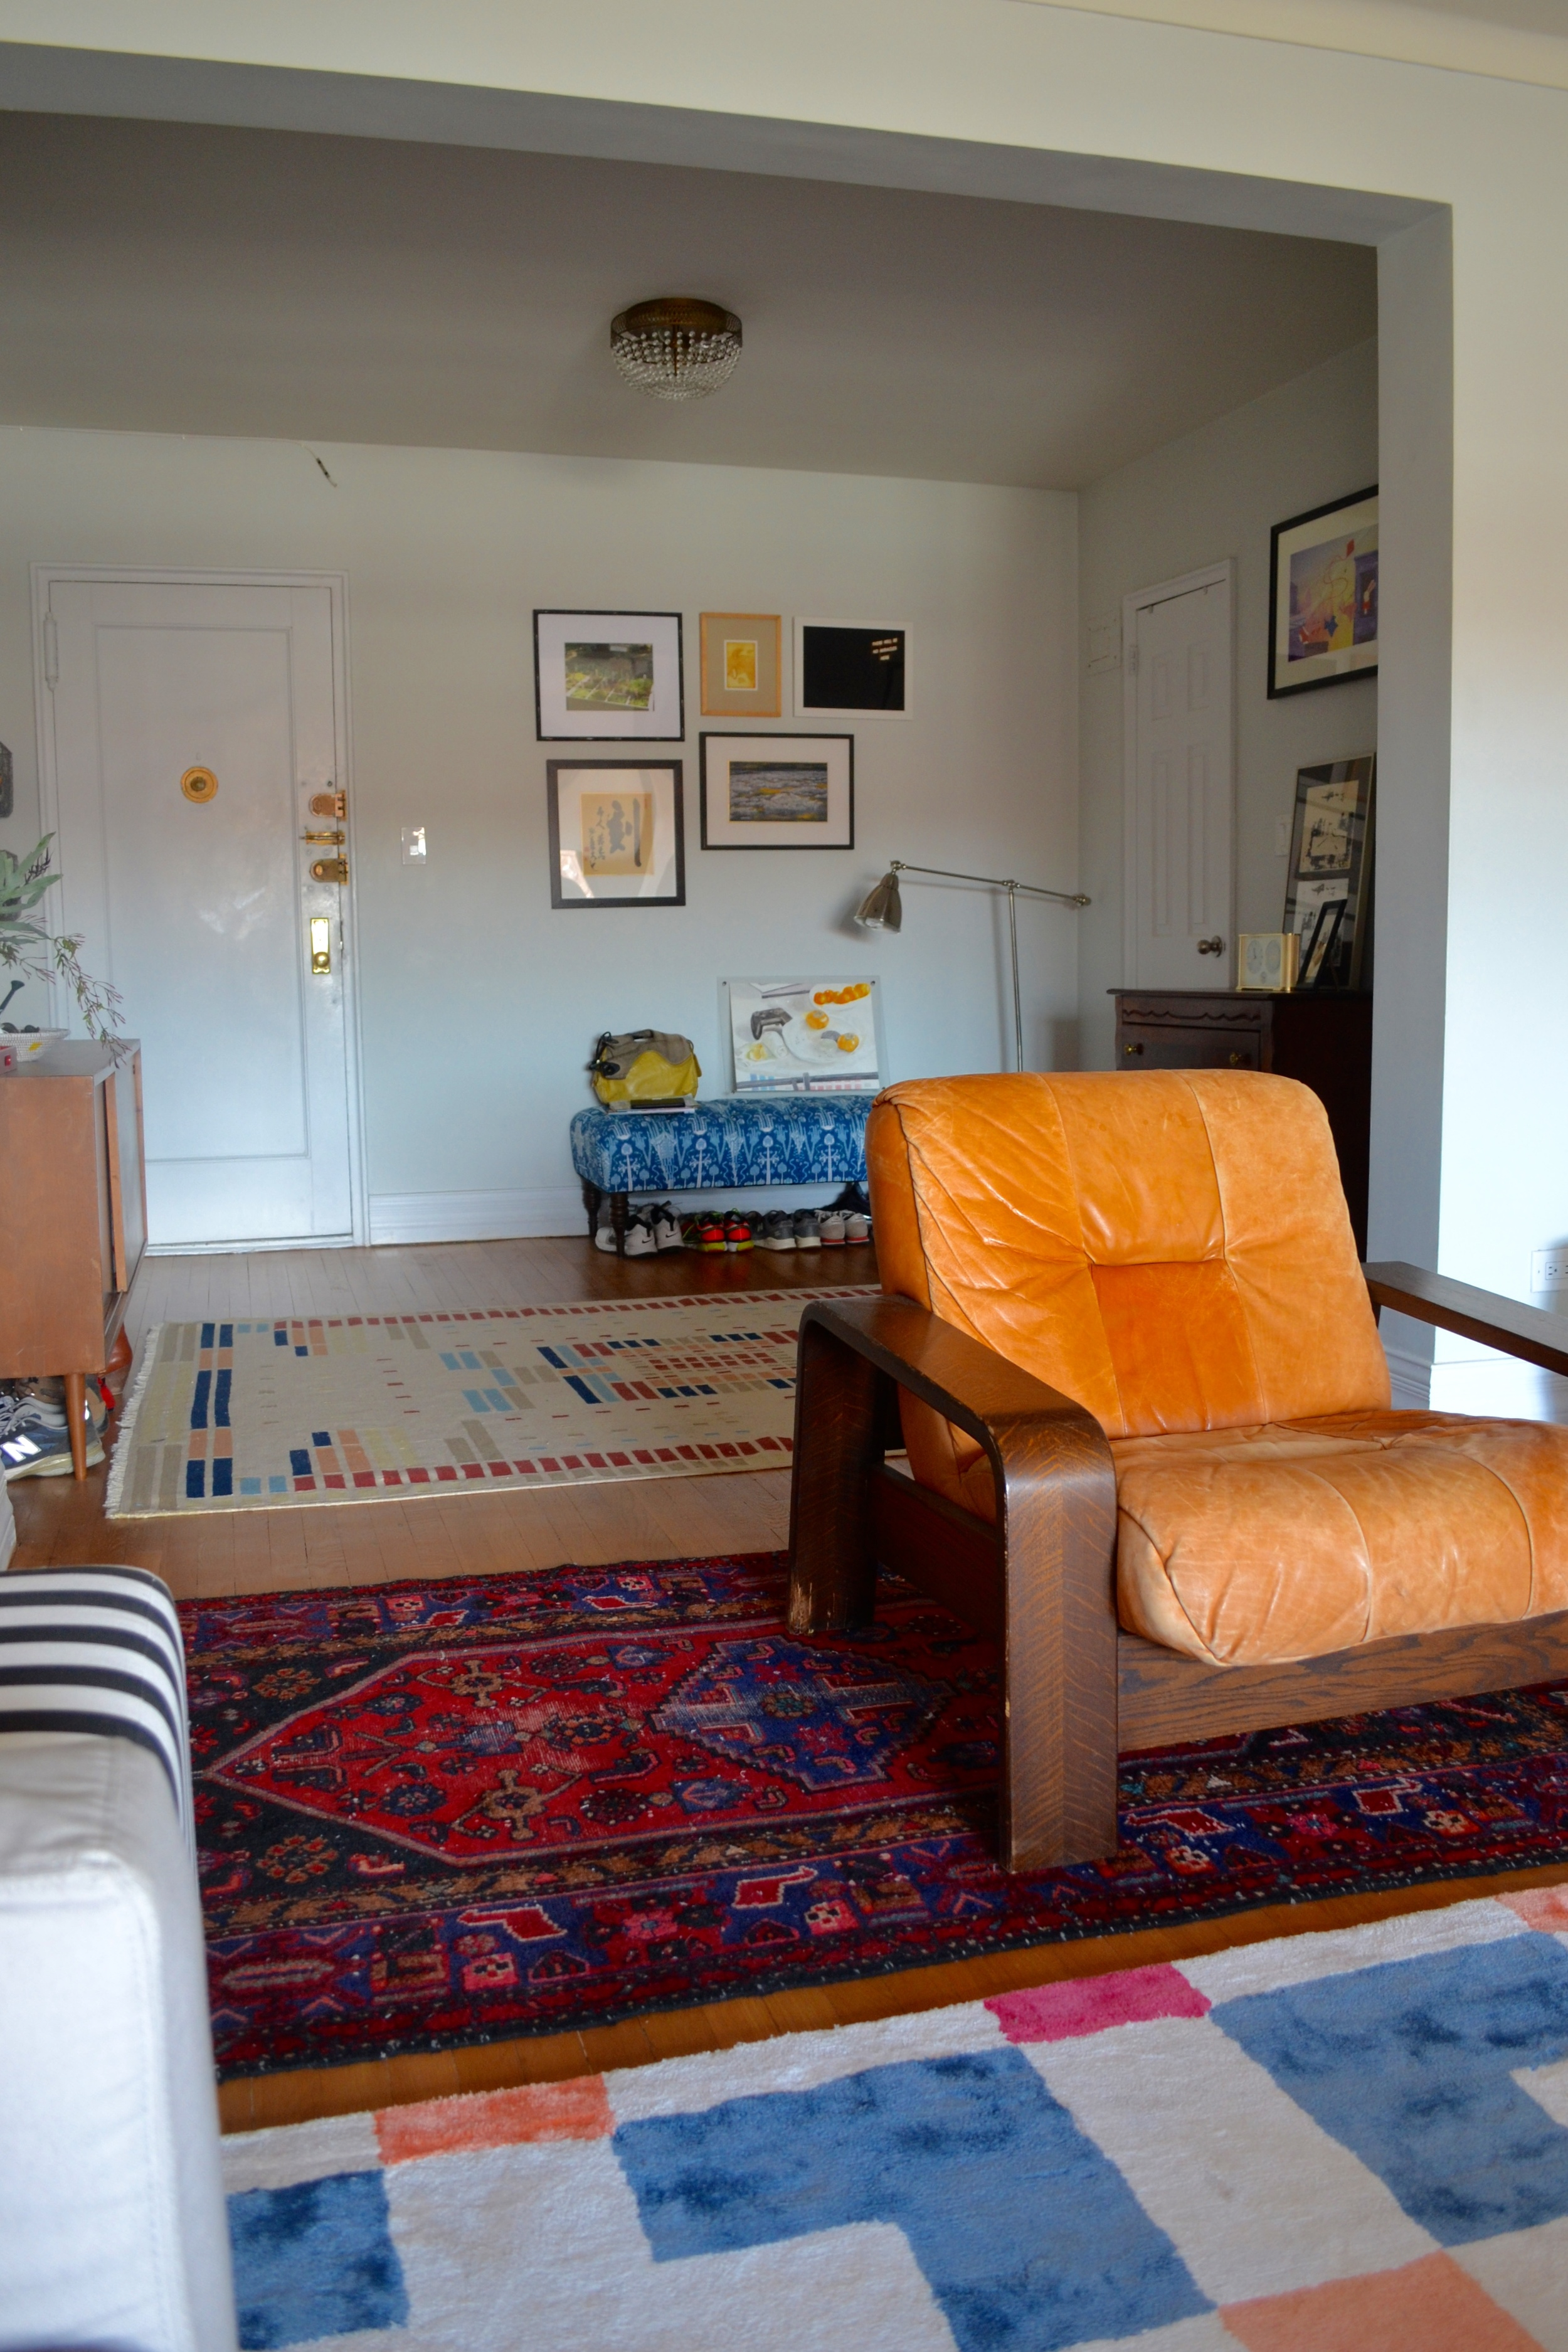 "We referred to the client's blue and red persian rug as the ""Rescue Rug"" throughout the project. Client Crafty and her boyfriend rescued it from a dumpster and had it professionally cleaned. Like new! It acted as the basis for our blue/red color scheme in the living and dining and is the perfect intermediary between the entry and living room rugs. The leather lounge chair was another craigslist find by Client Crafty."